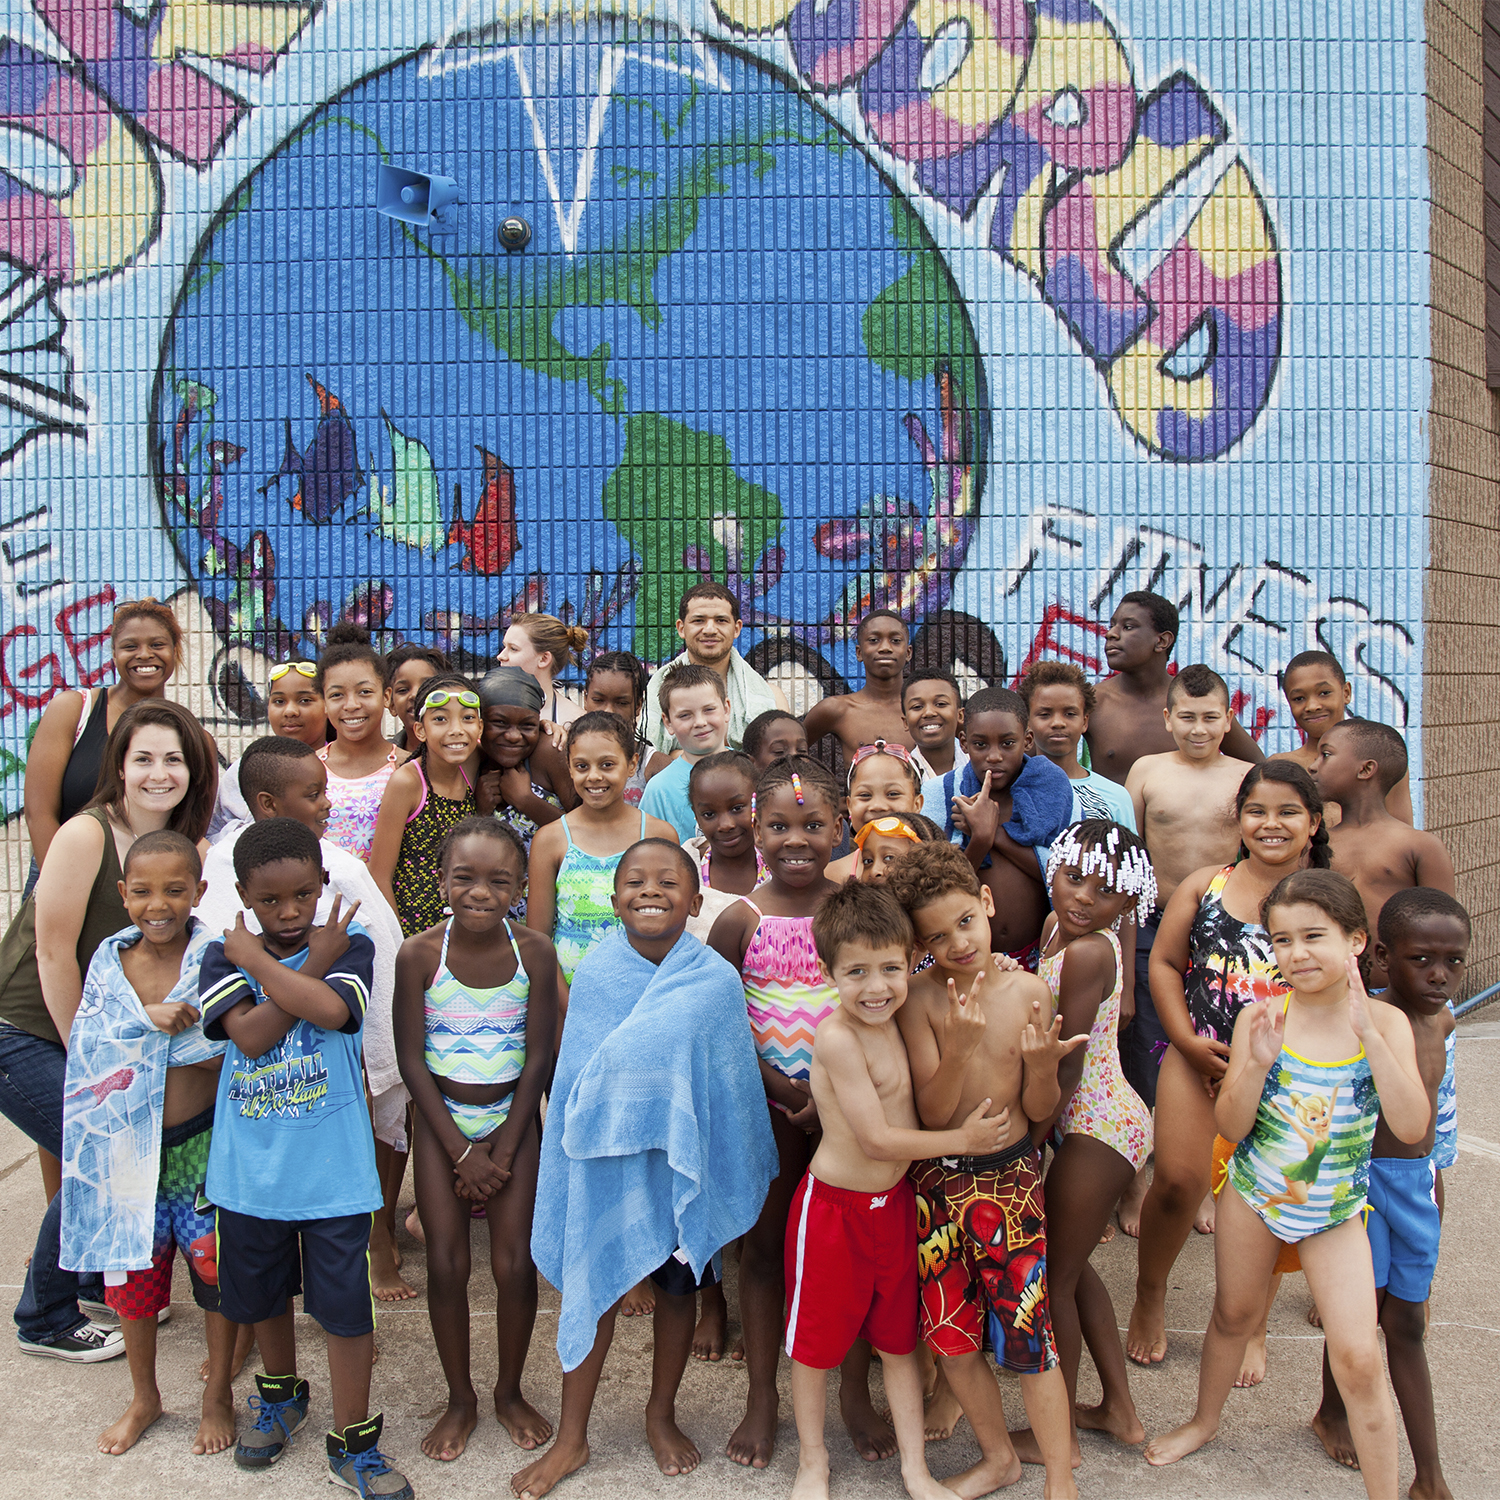 A group of young students in swimsuits posing in front of a mural at the swimming pool.